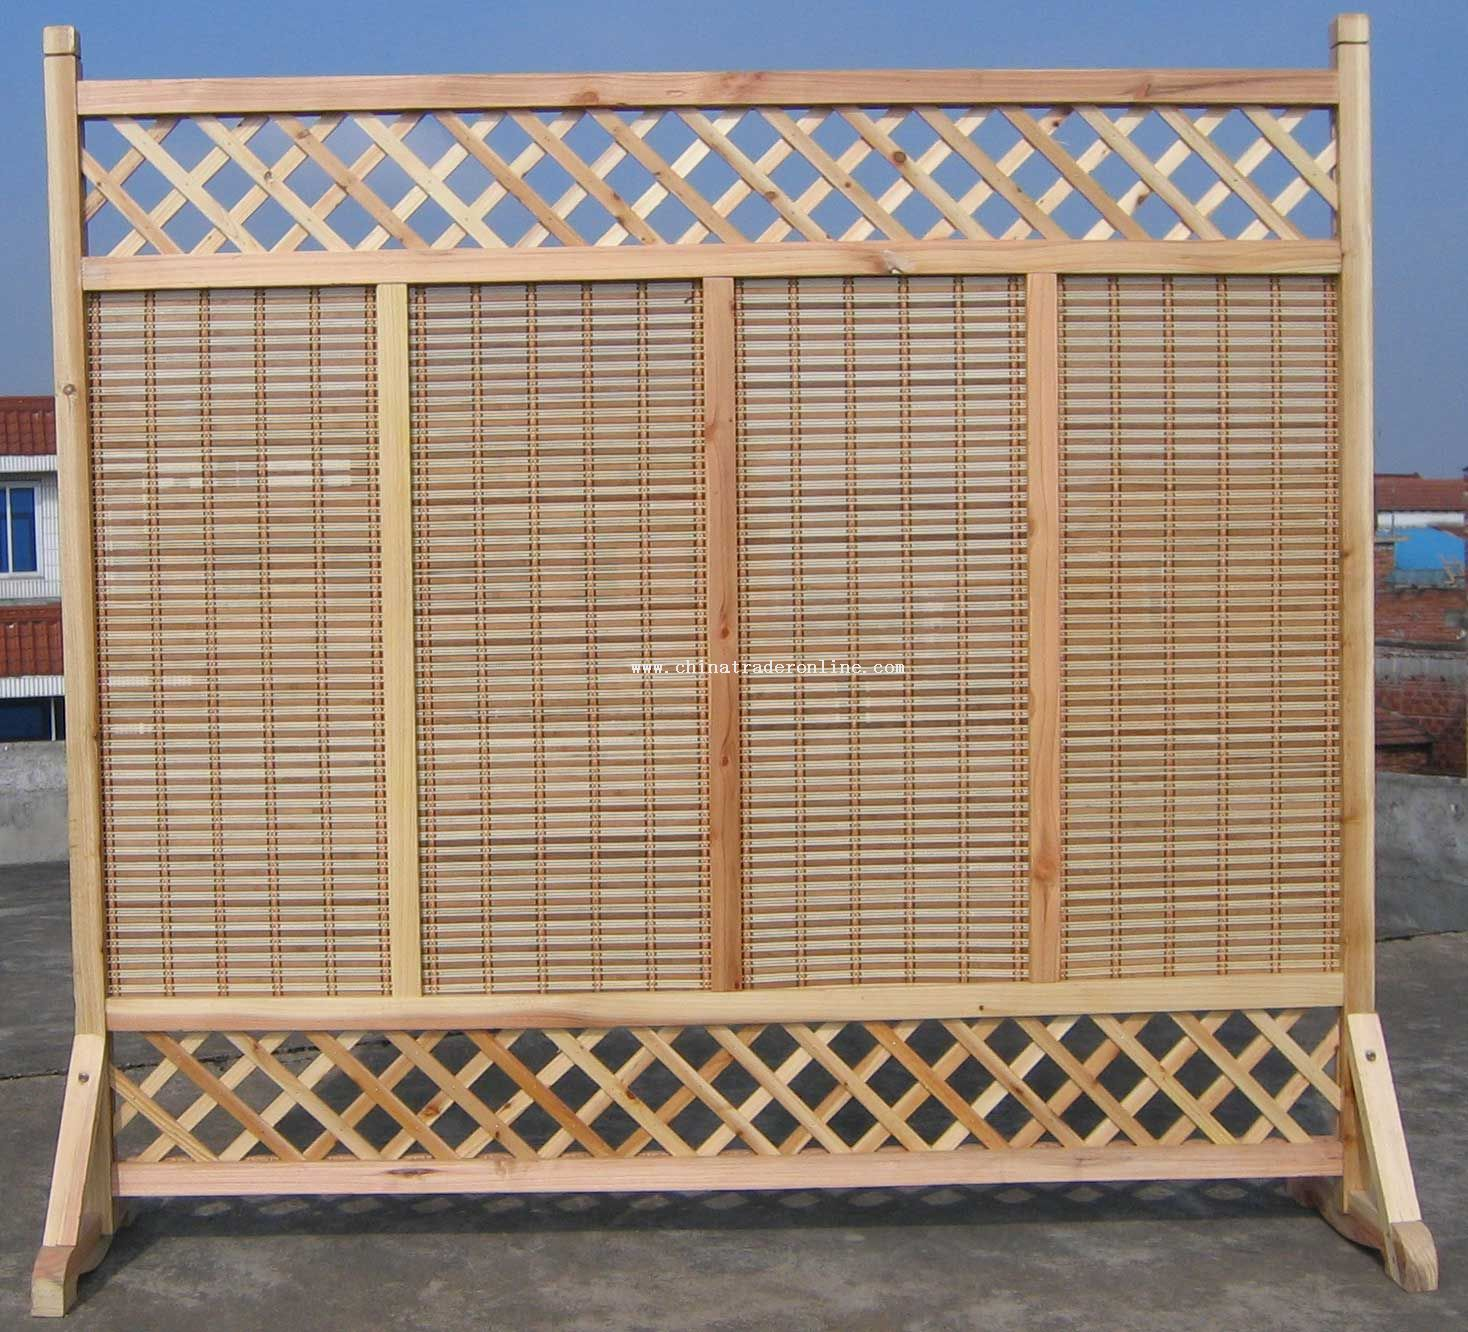 Eastern White Cedar Fence - Custom Cedar Wood Fencing